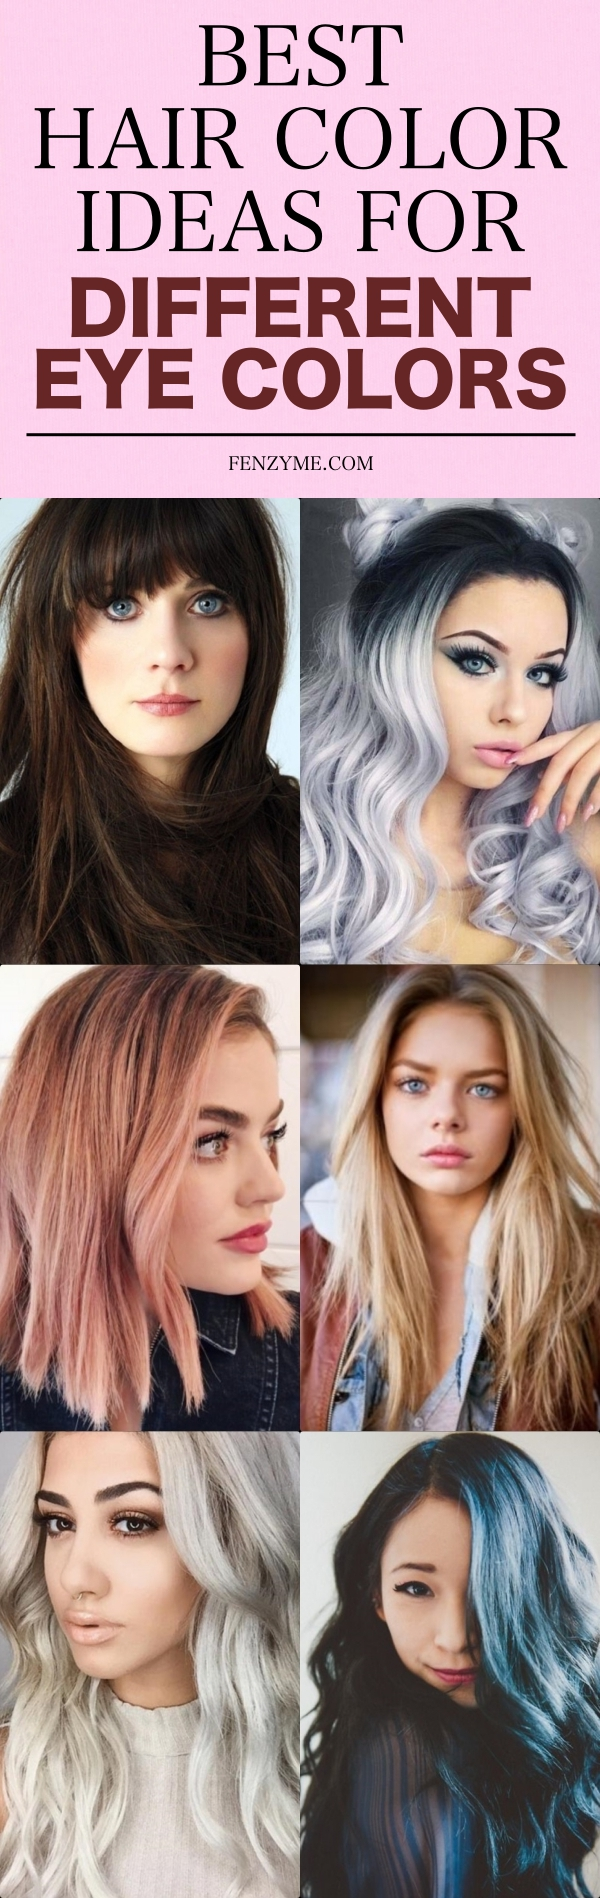 Best Hair Color Ideas for Different Eye Colors